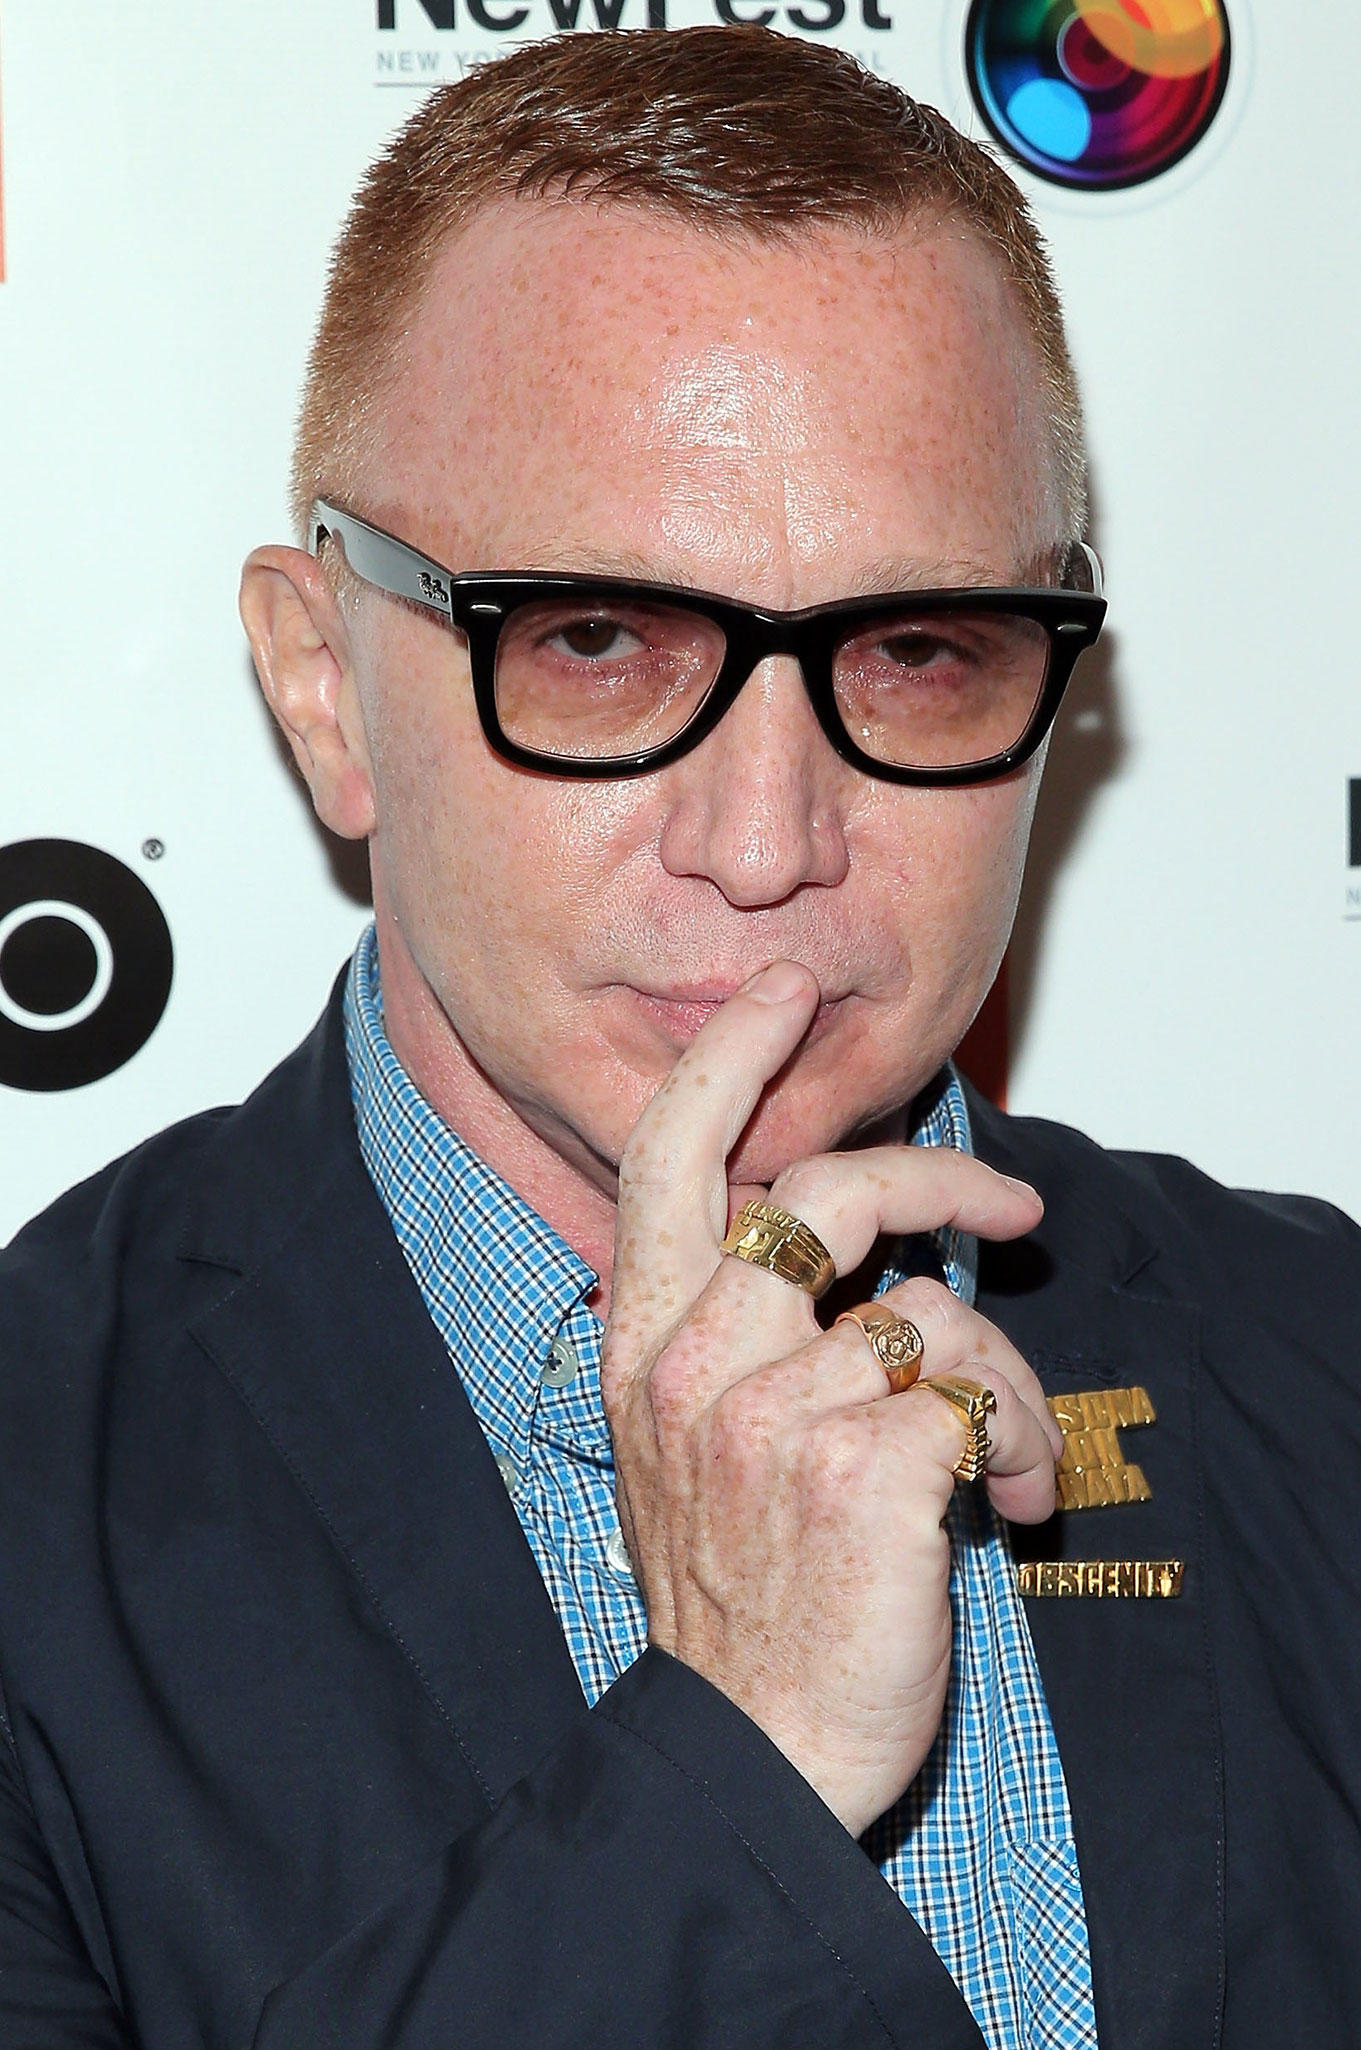 Bruce LaBruce at the 2014 Newfest at The Film Society of Lincoln Center screening of